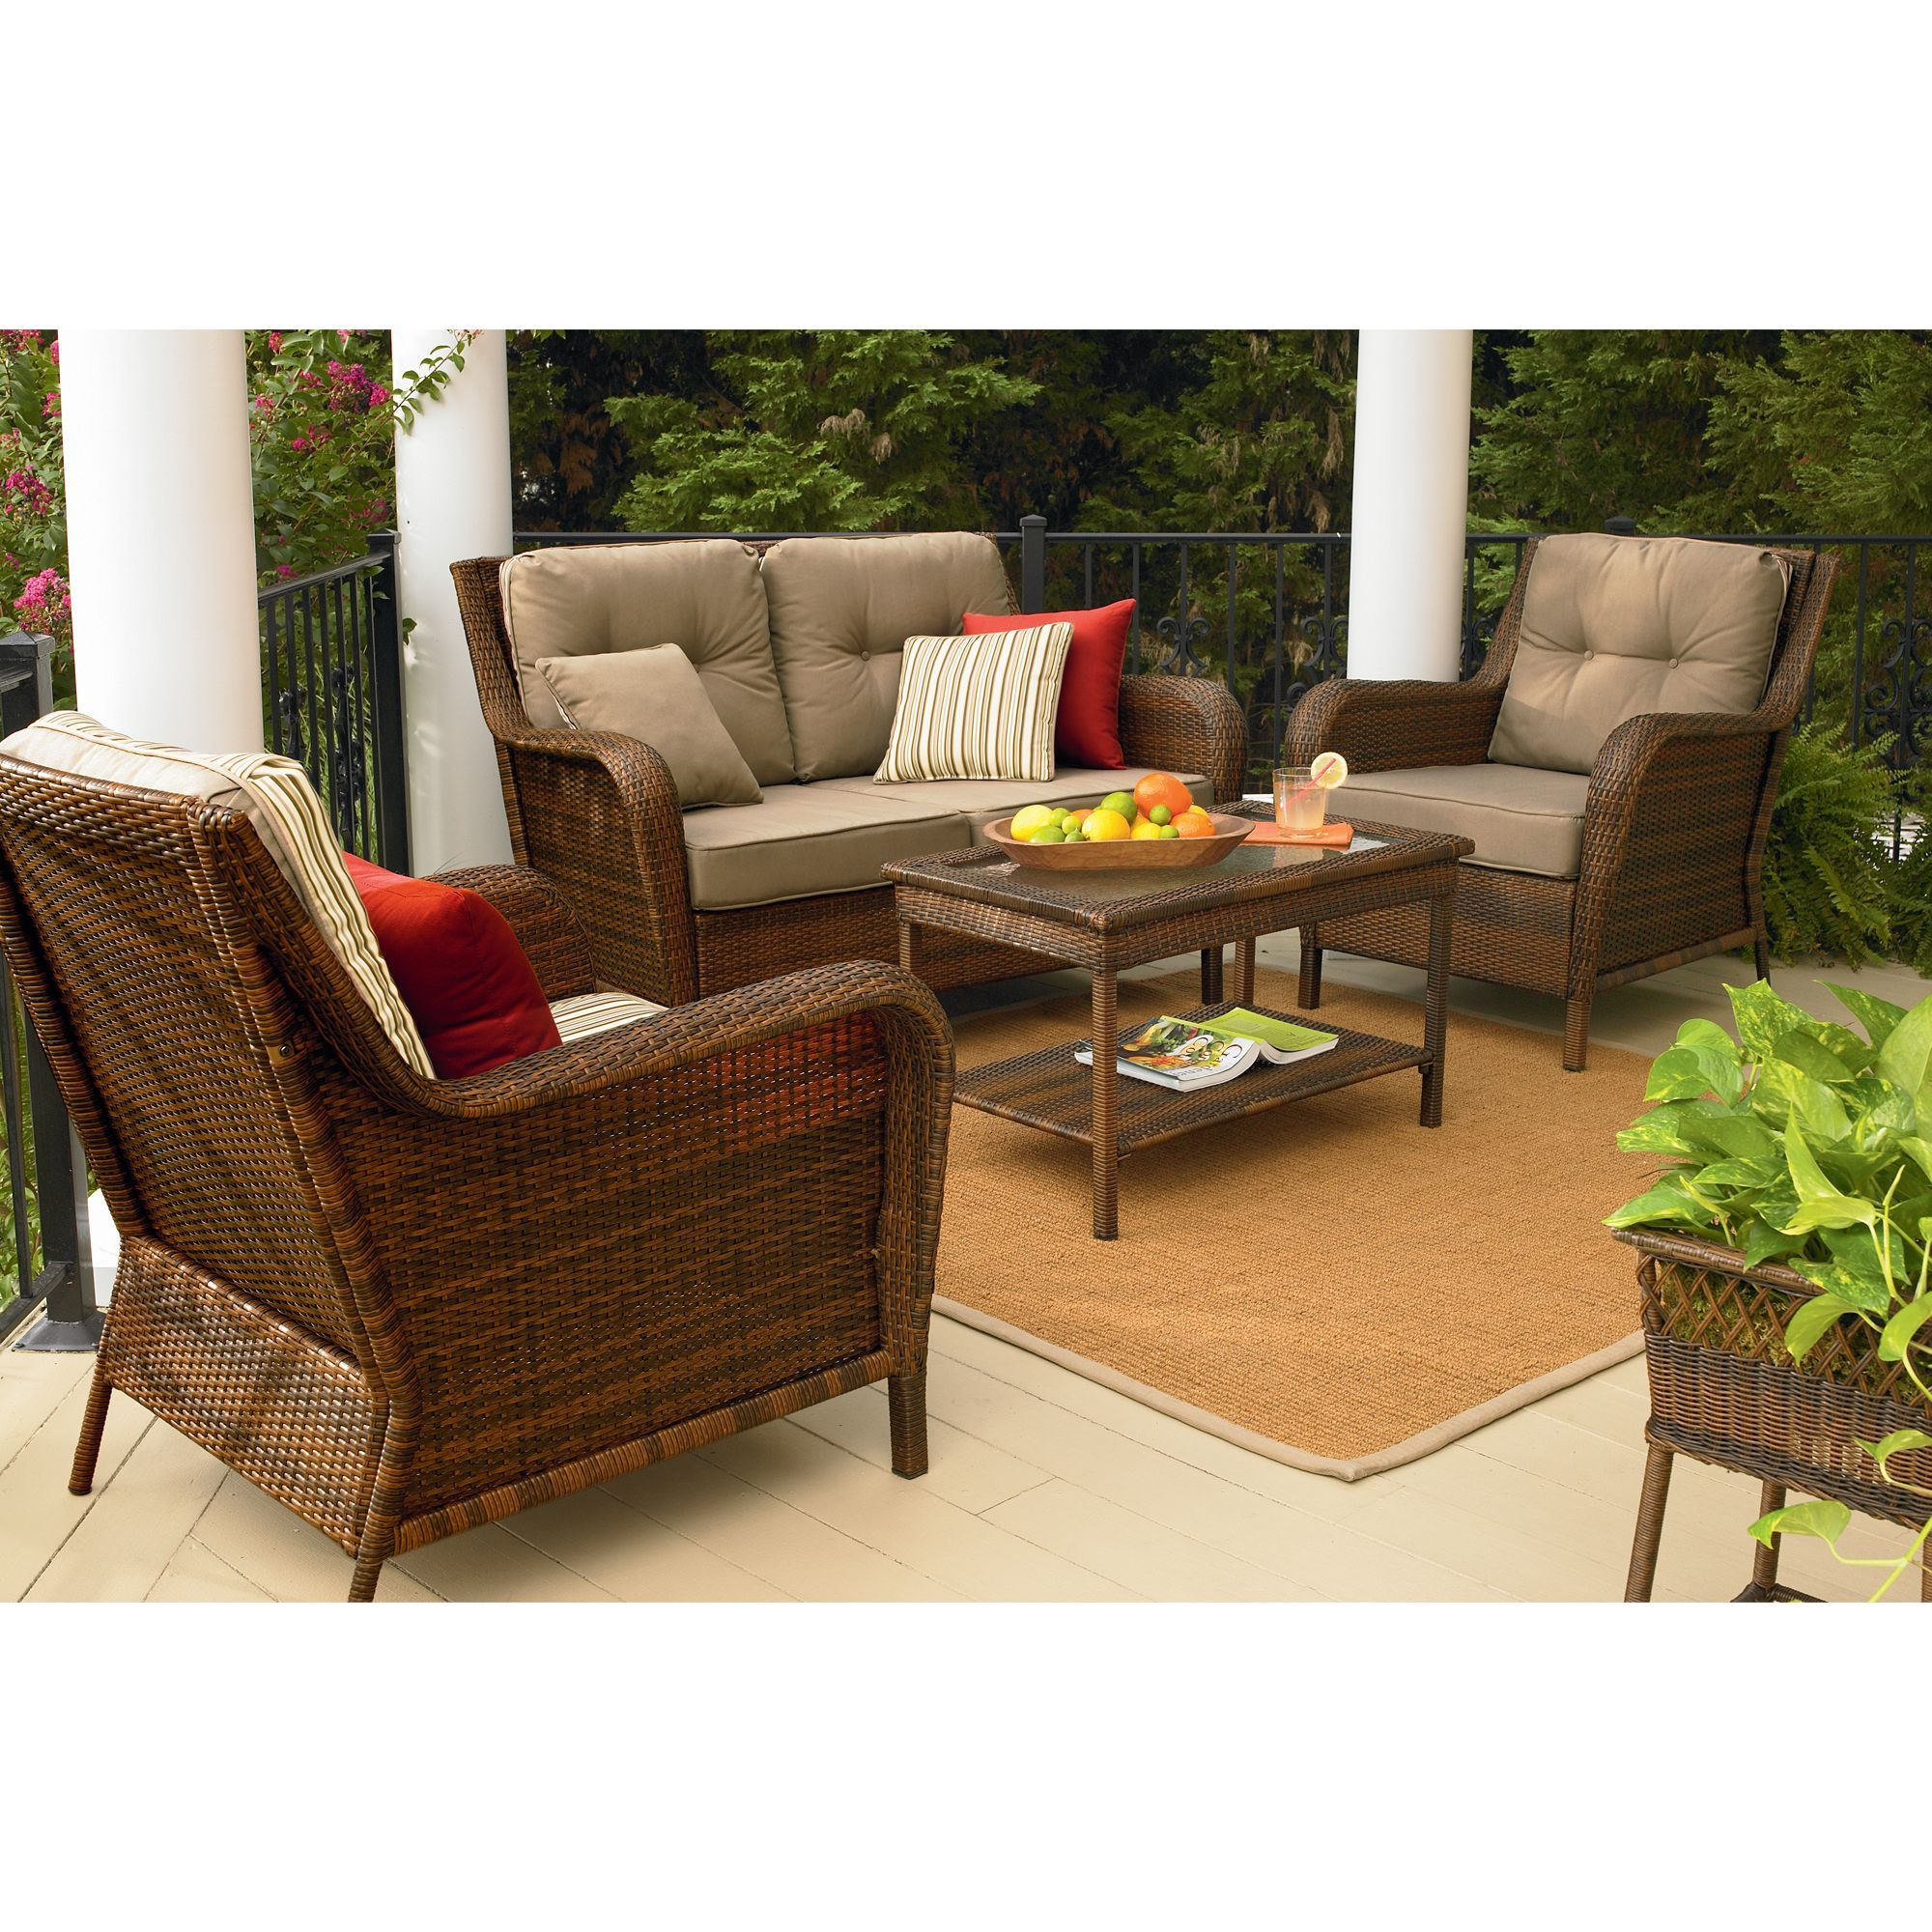 Mayfield 4 Pc Deep Seating Set Make Your Outdoors Fun